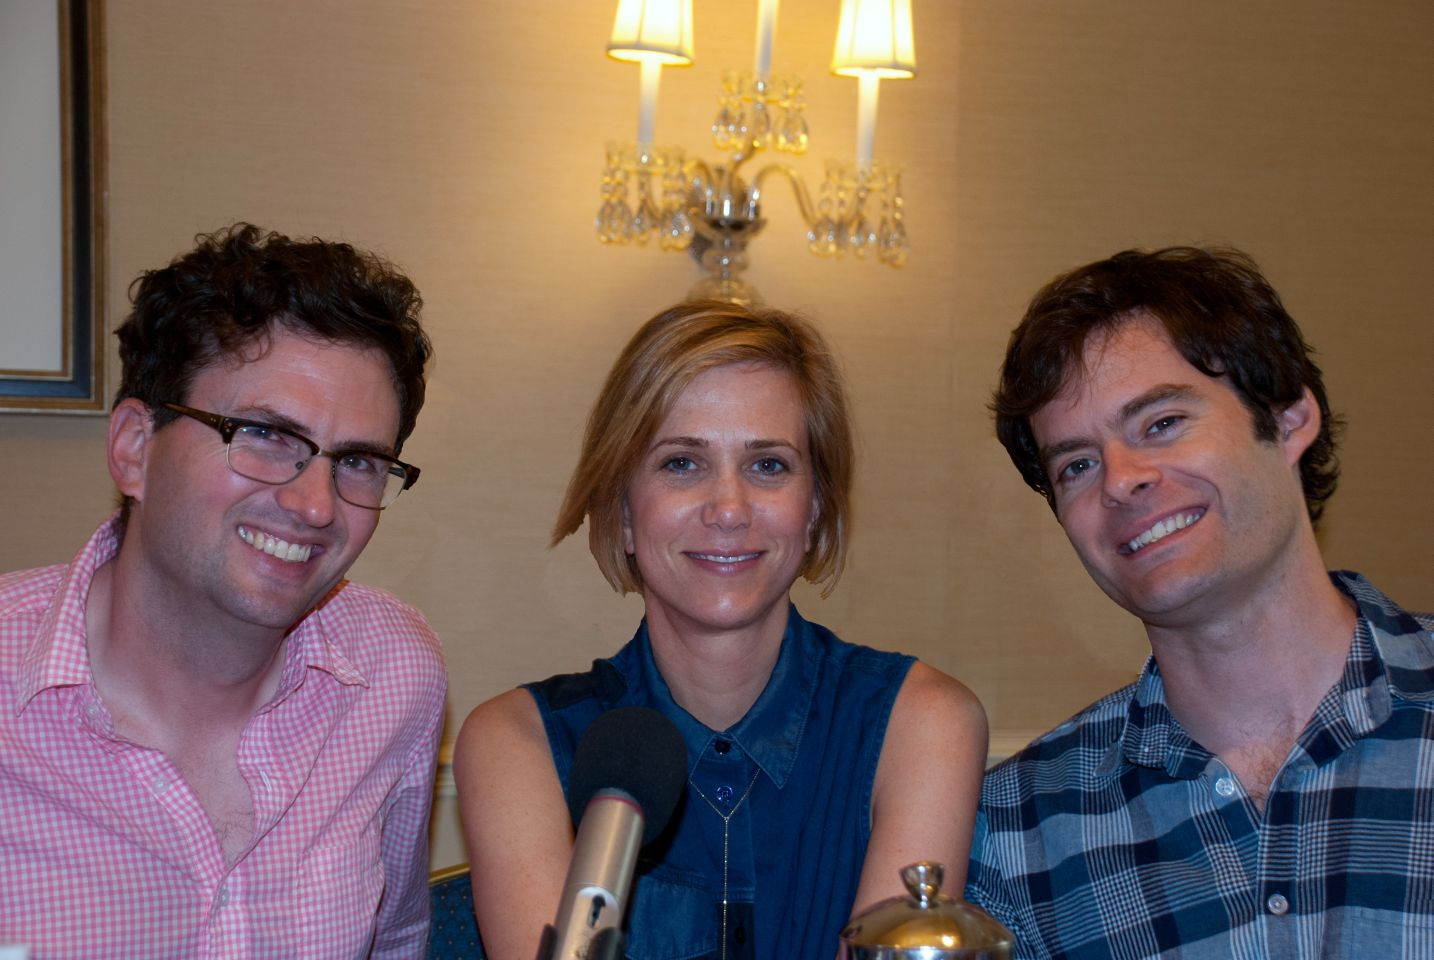 Caption: Craig Johnson, Kristen Wiig, Bill Hader, San Francisco, CA 5/1/14, Credit: Andrea Chase